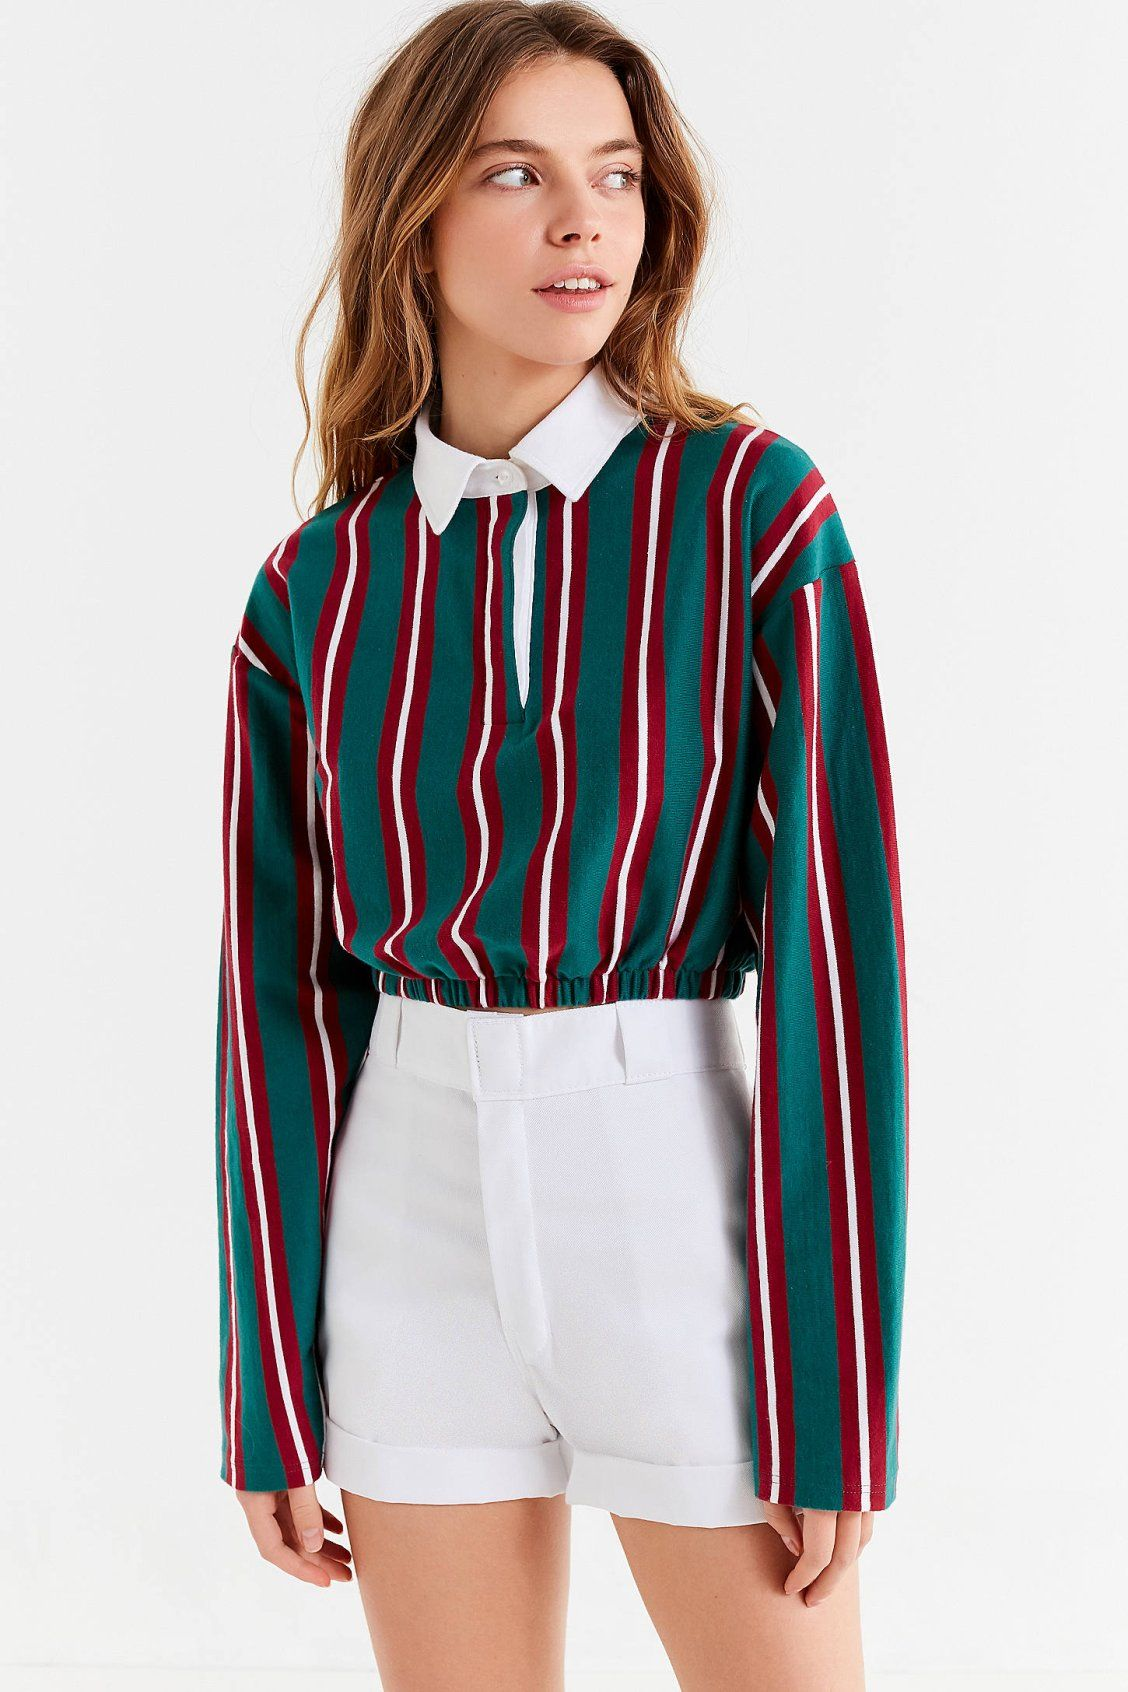 a51187d6f310e UO Rugby Striped Cropped Top